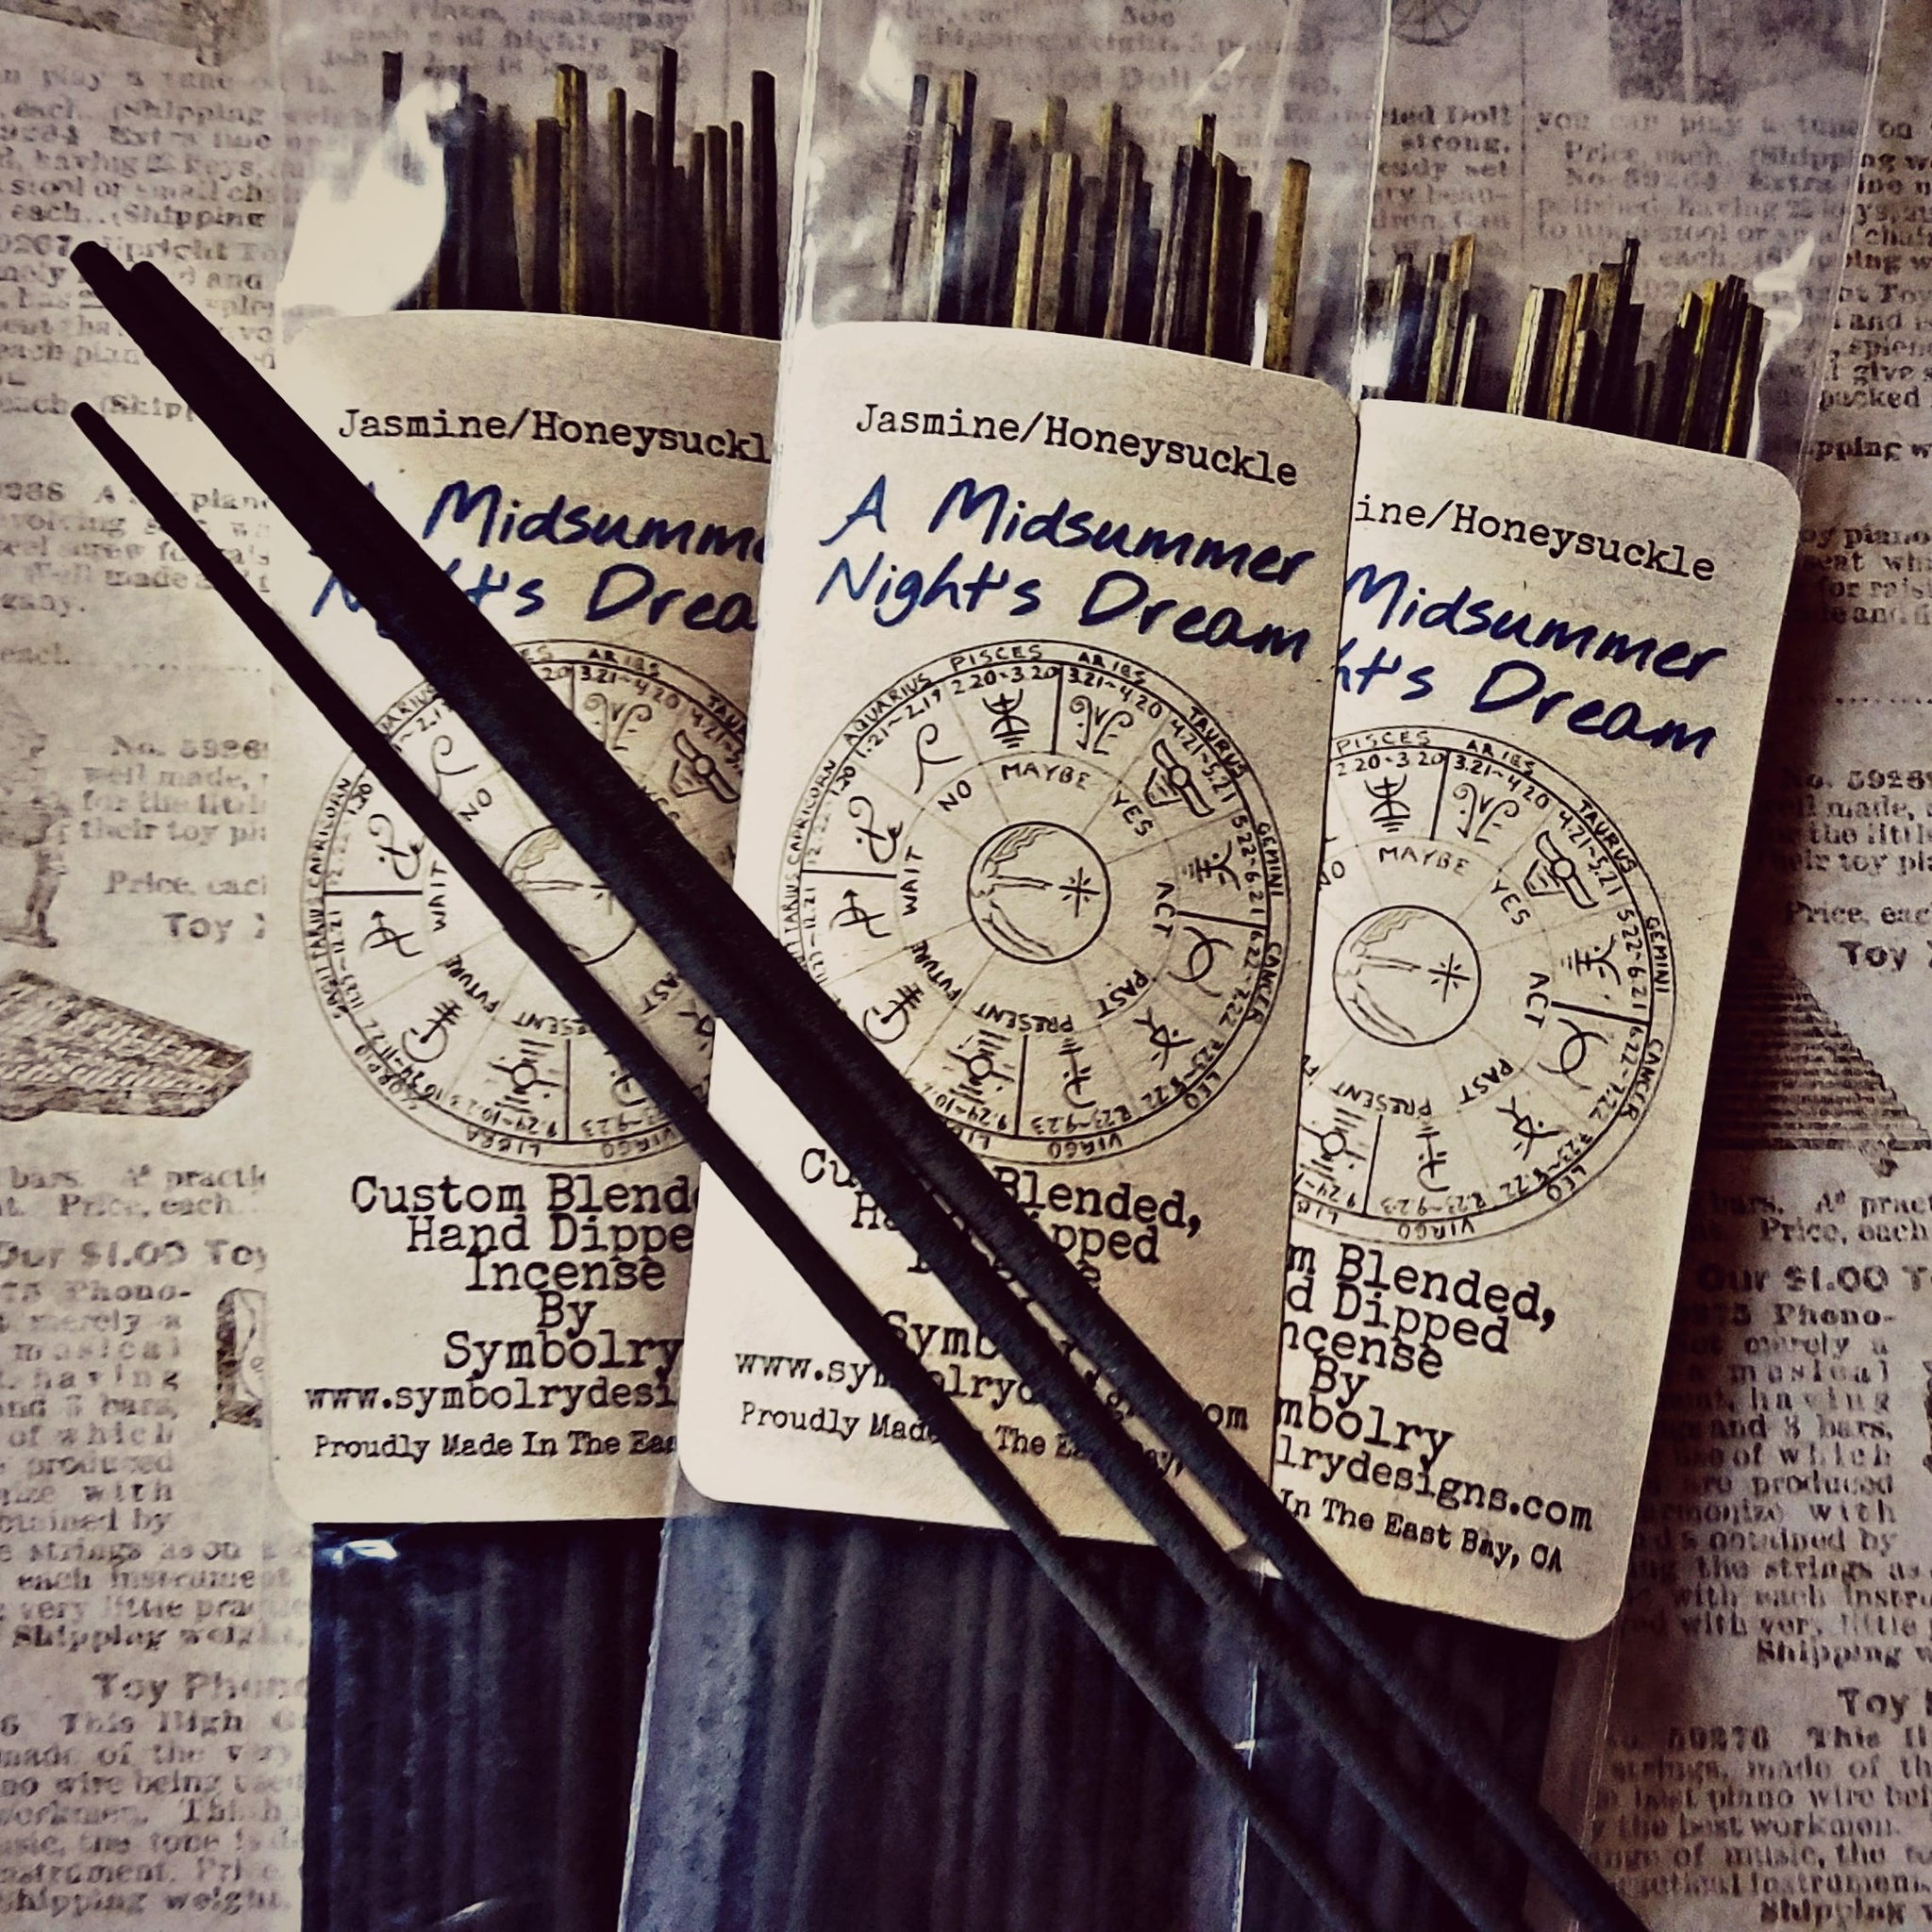 Midsummer Night's Dream - Custom Blended, Hand Dipped Incense